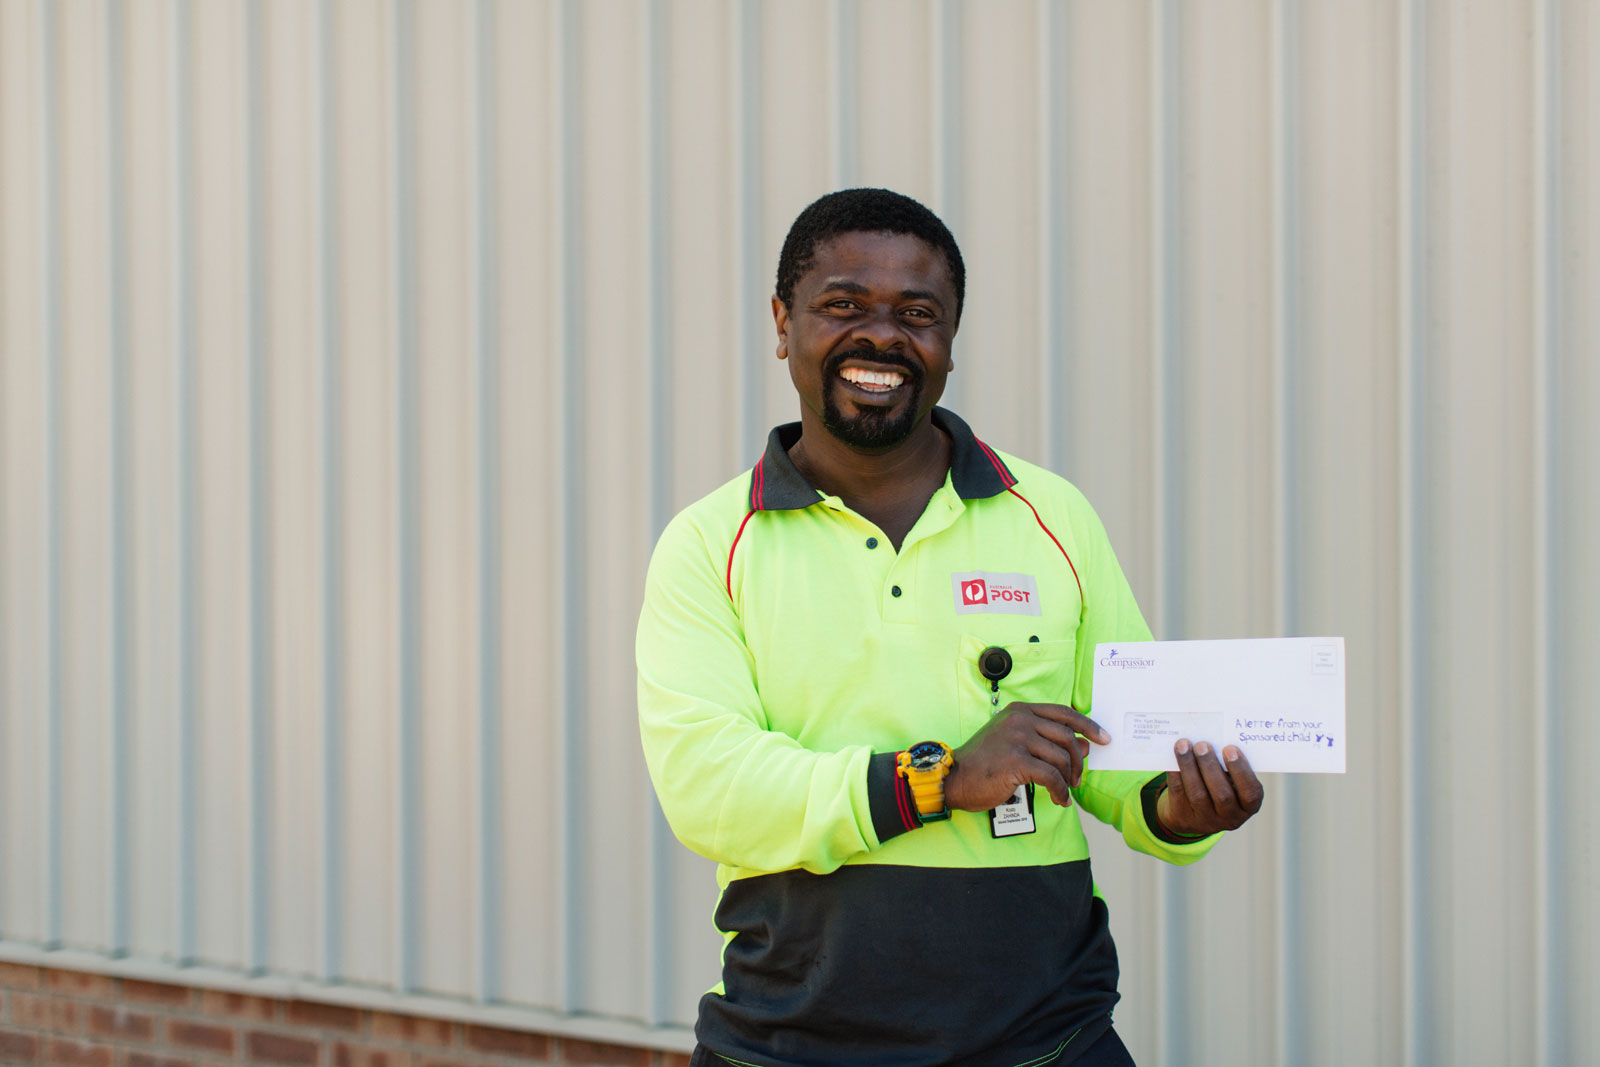 How One Remarkable Postman Encourages Sponsors on His Route